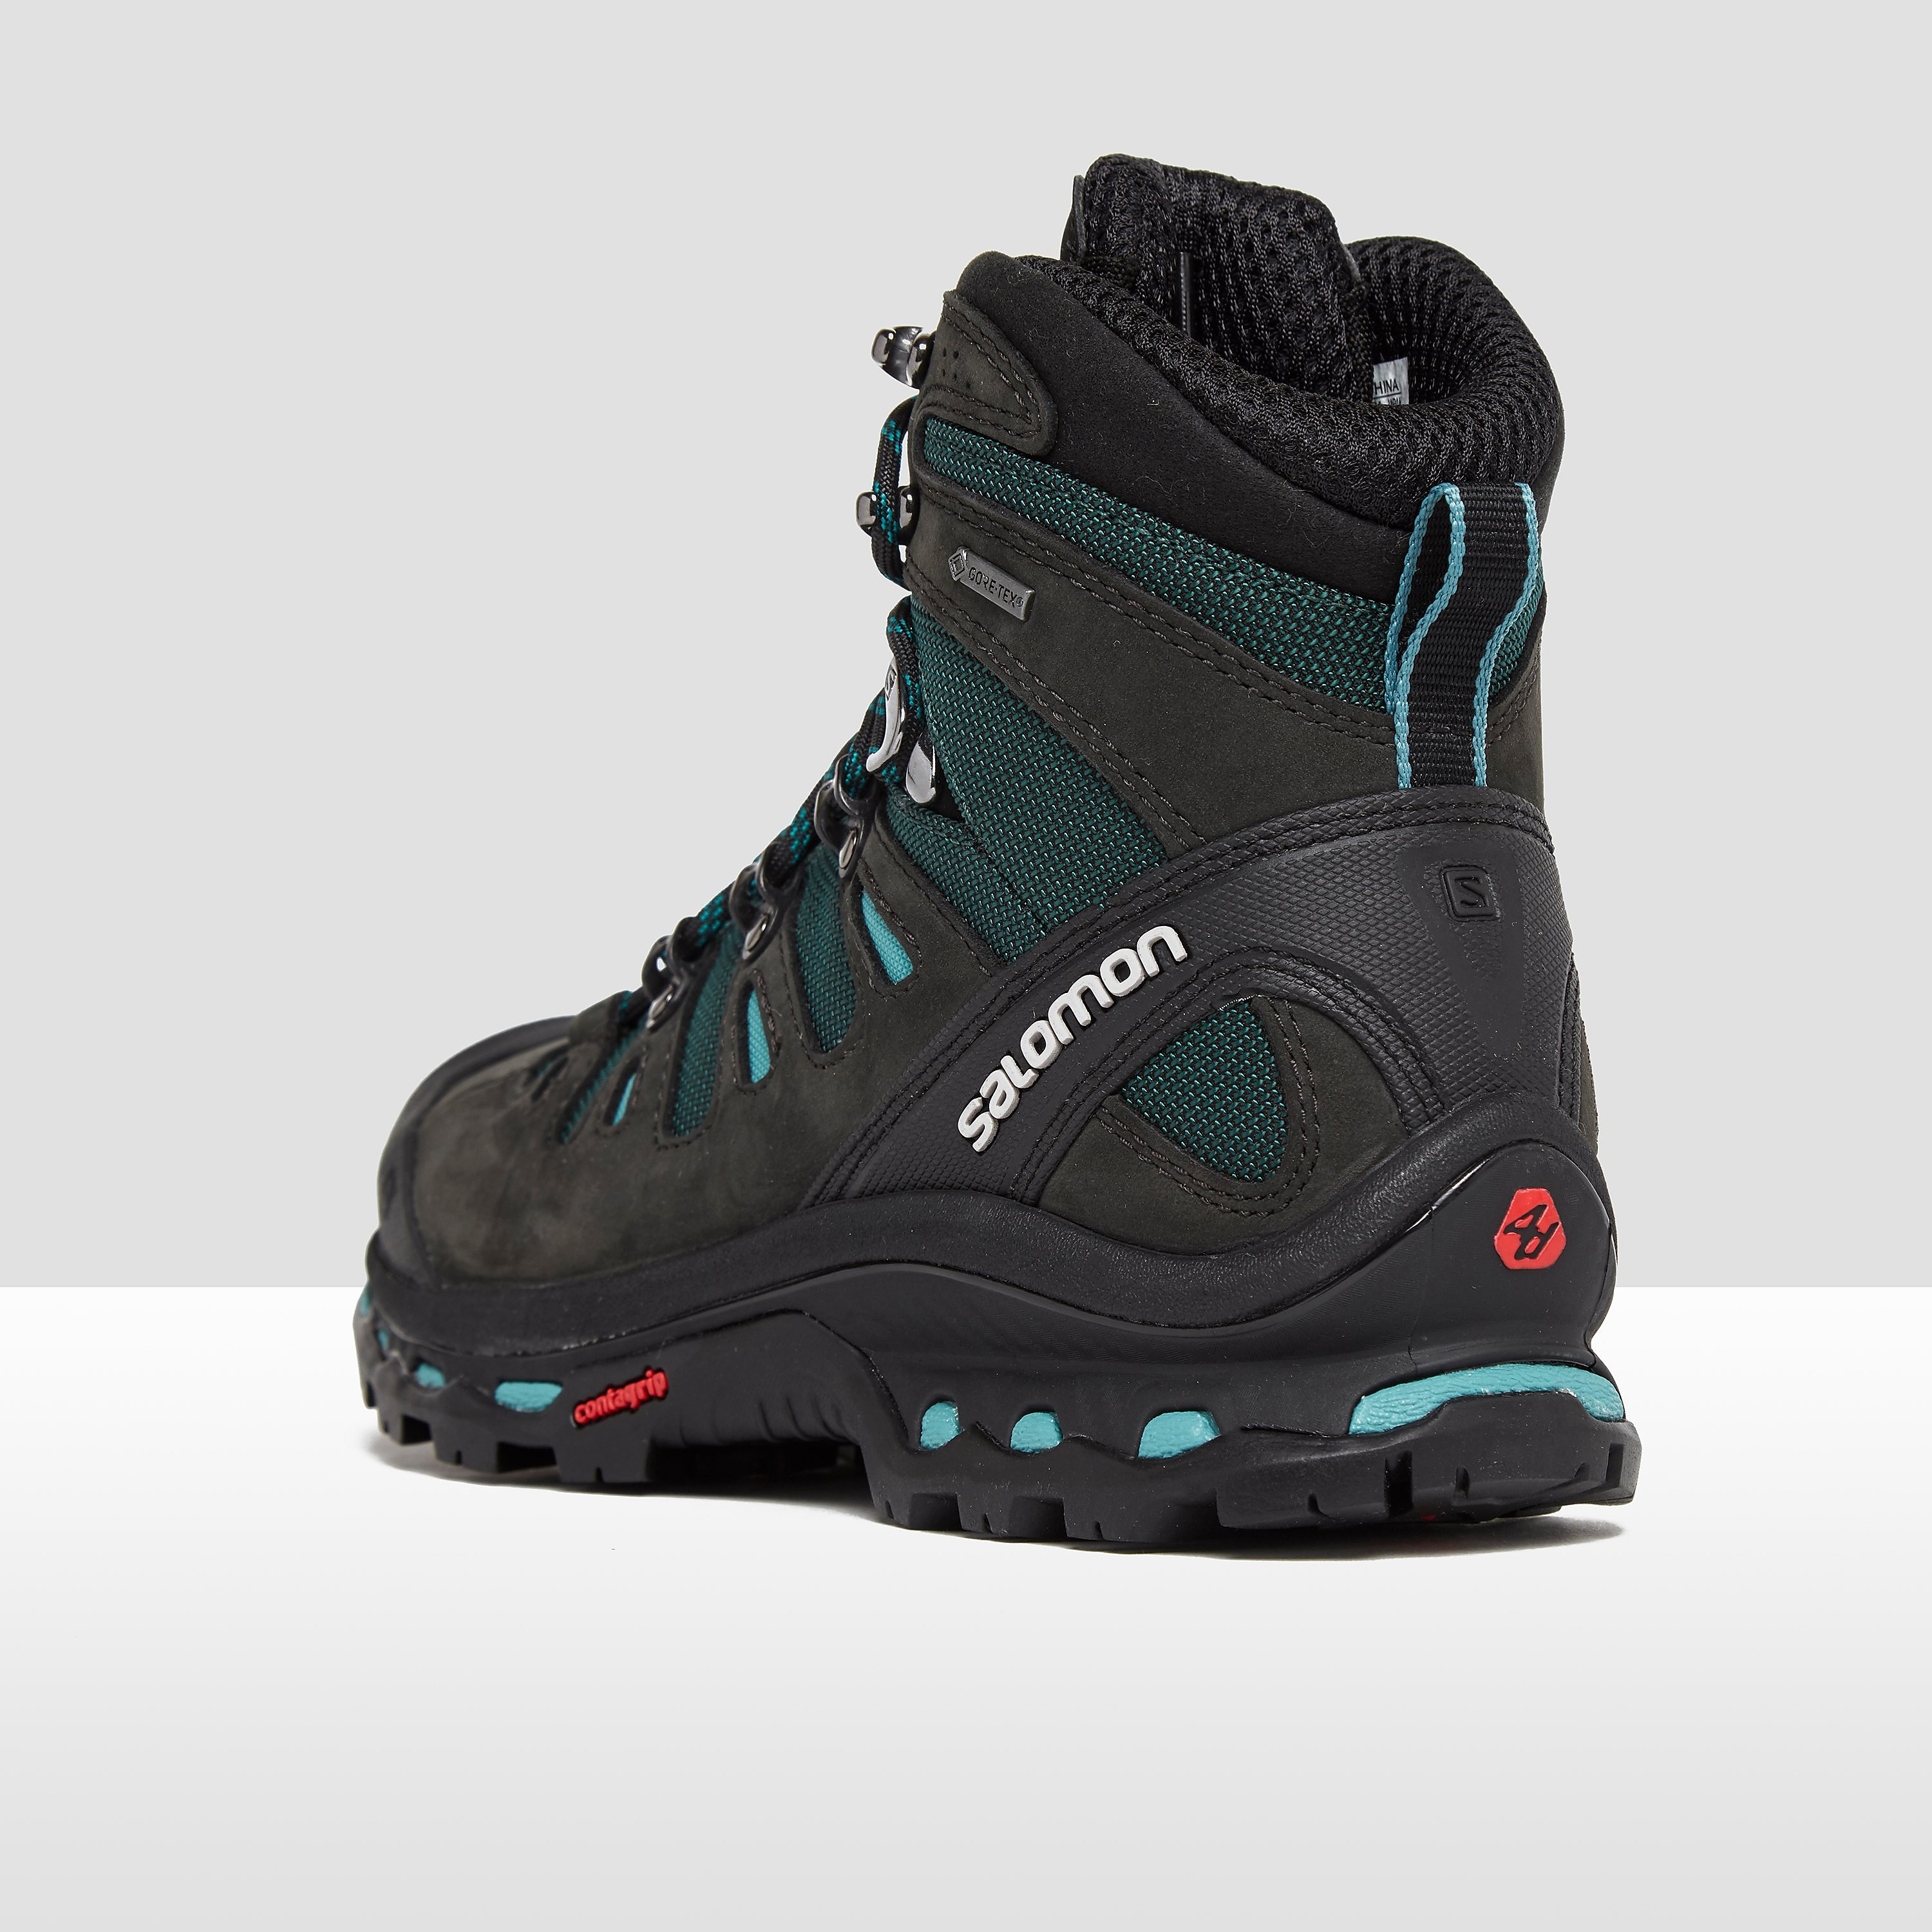 Salomon QUEST 4D 2 GTX WOMEN'S HIKING BOOT